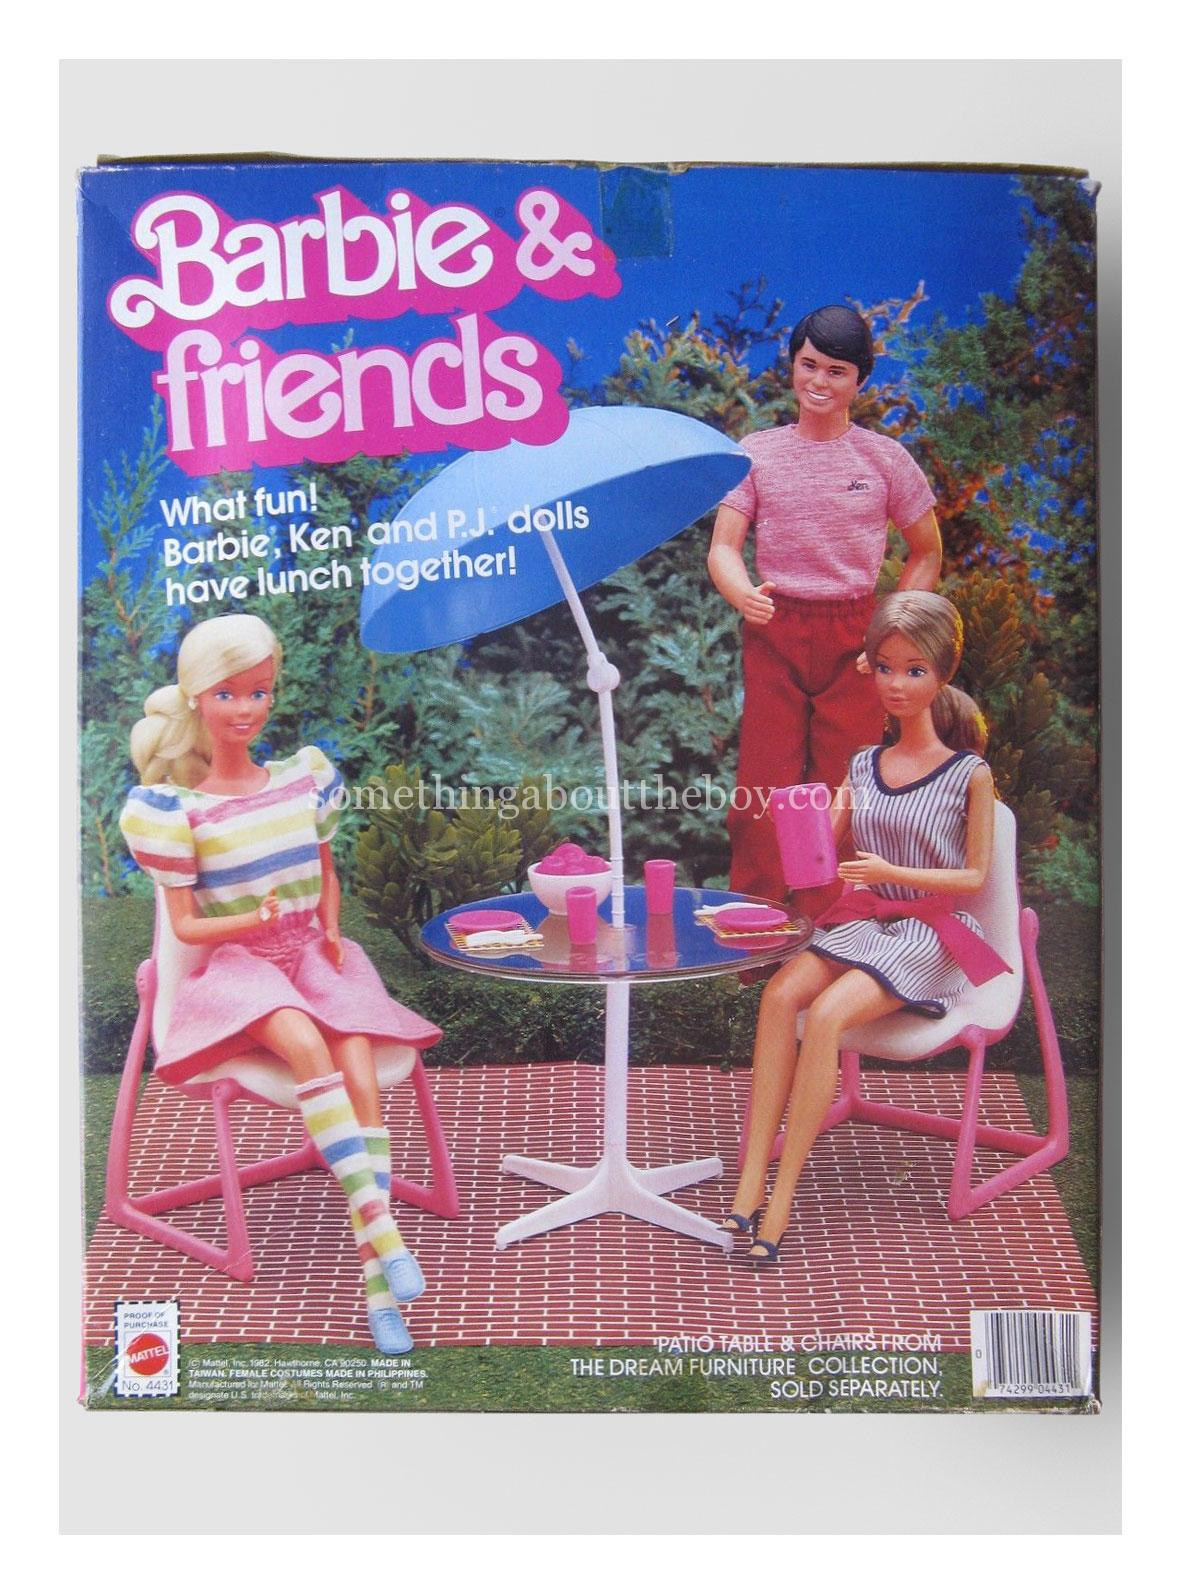 1983 #4431 Barbie & Friends original packaging